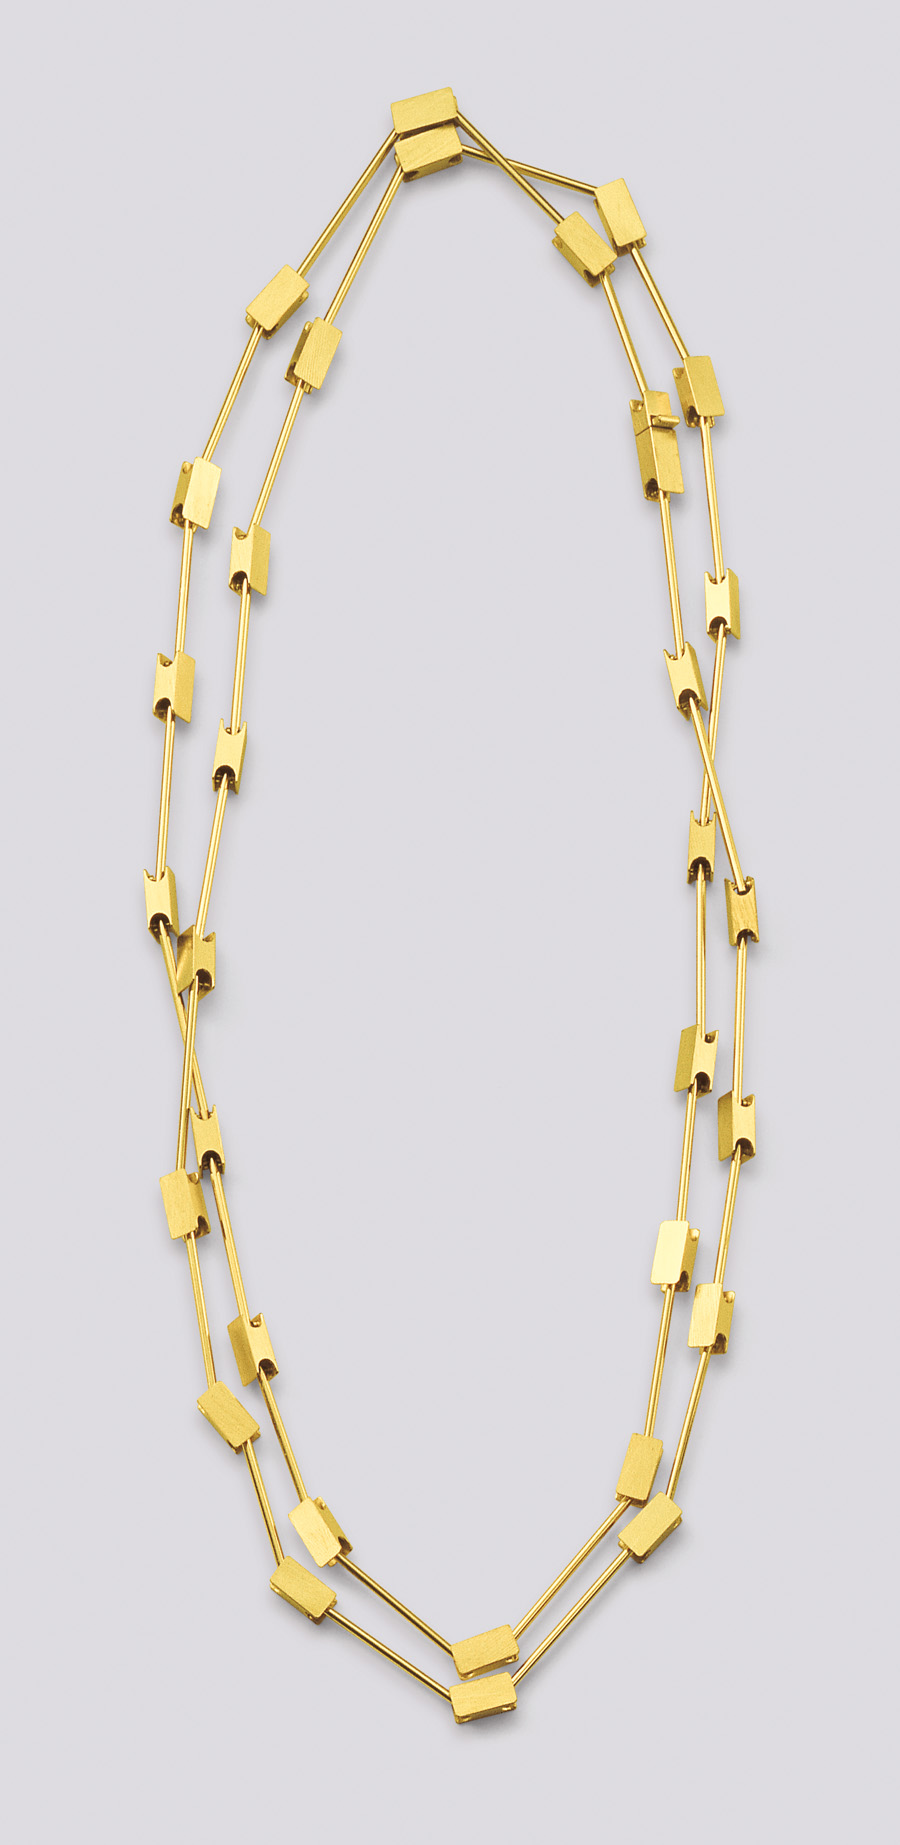 necklace  2008  gold 750  1080x5  mm